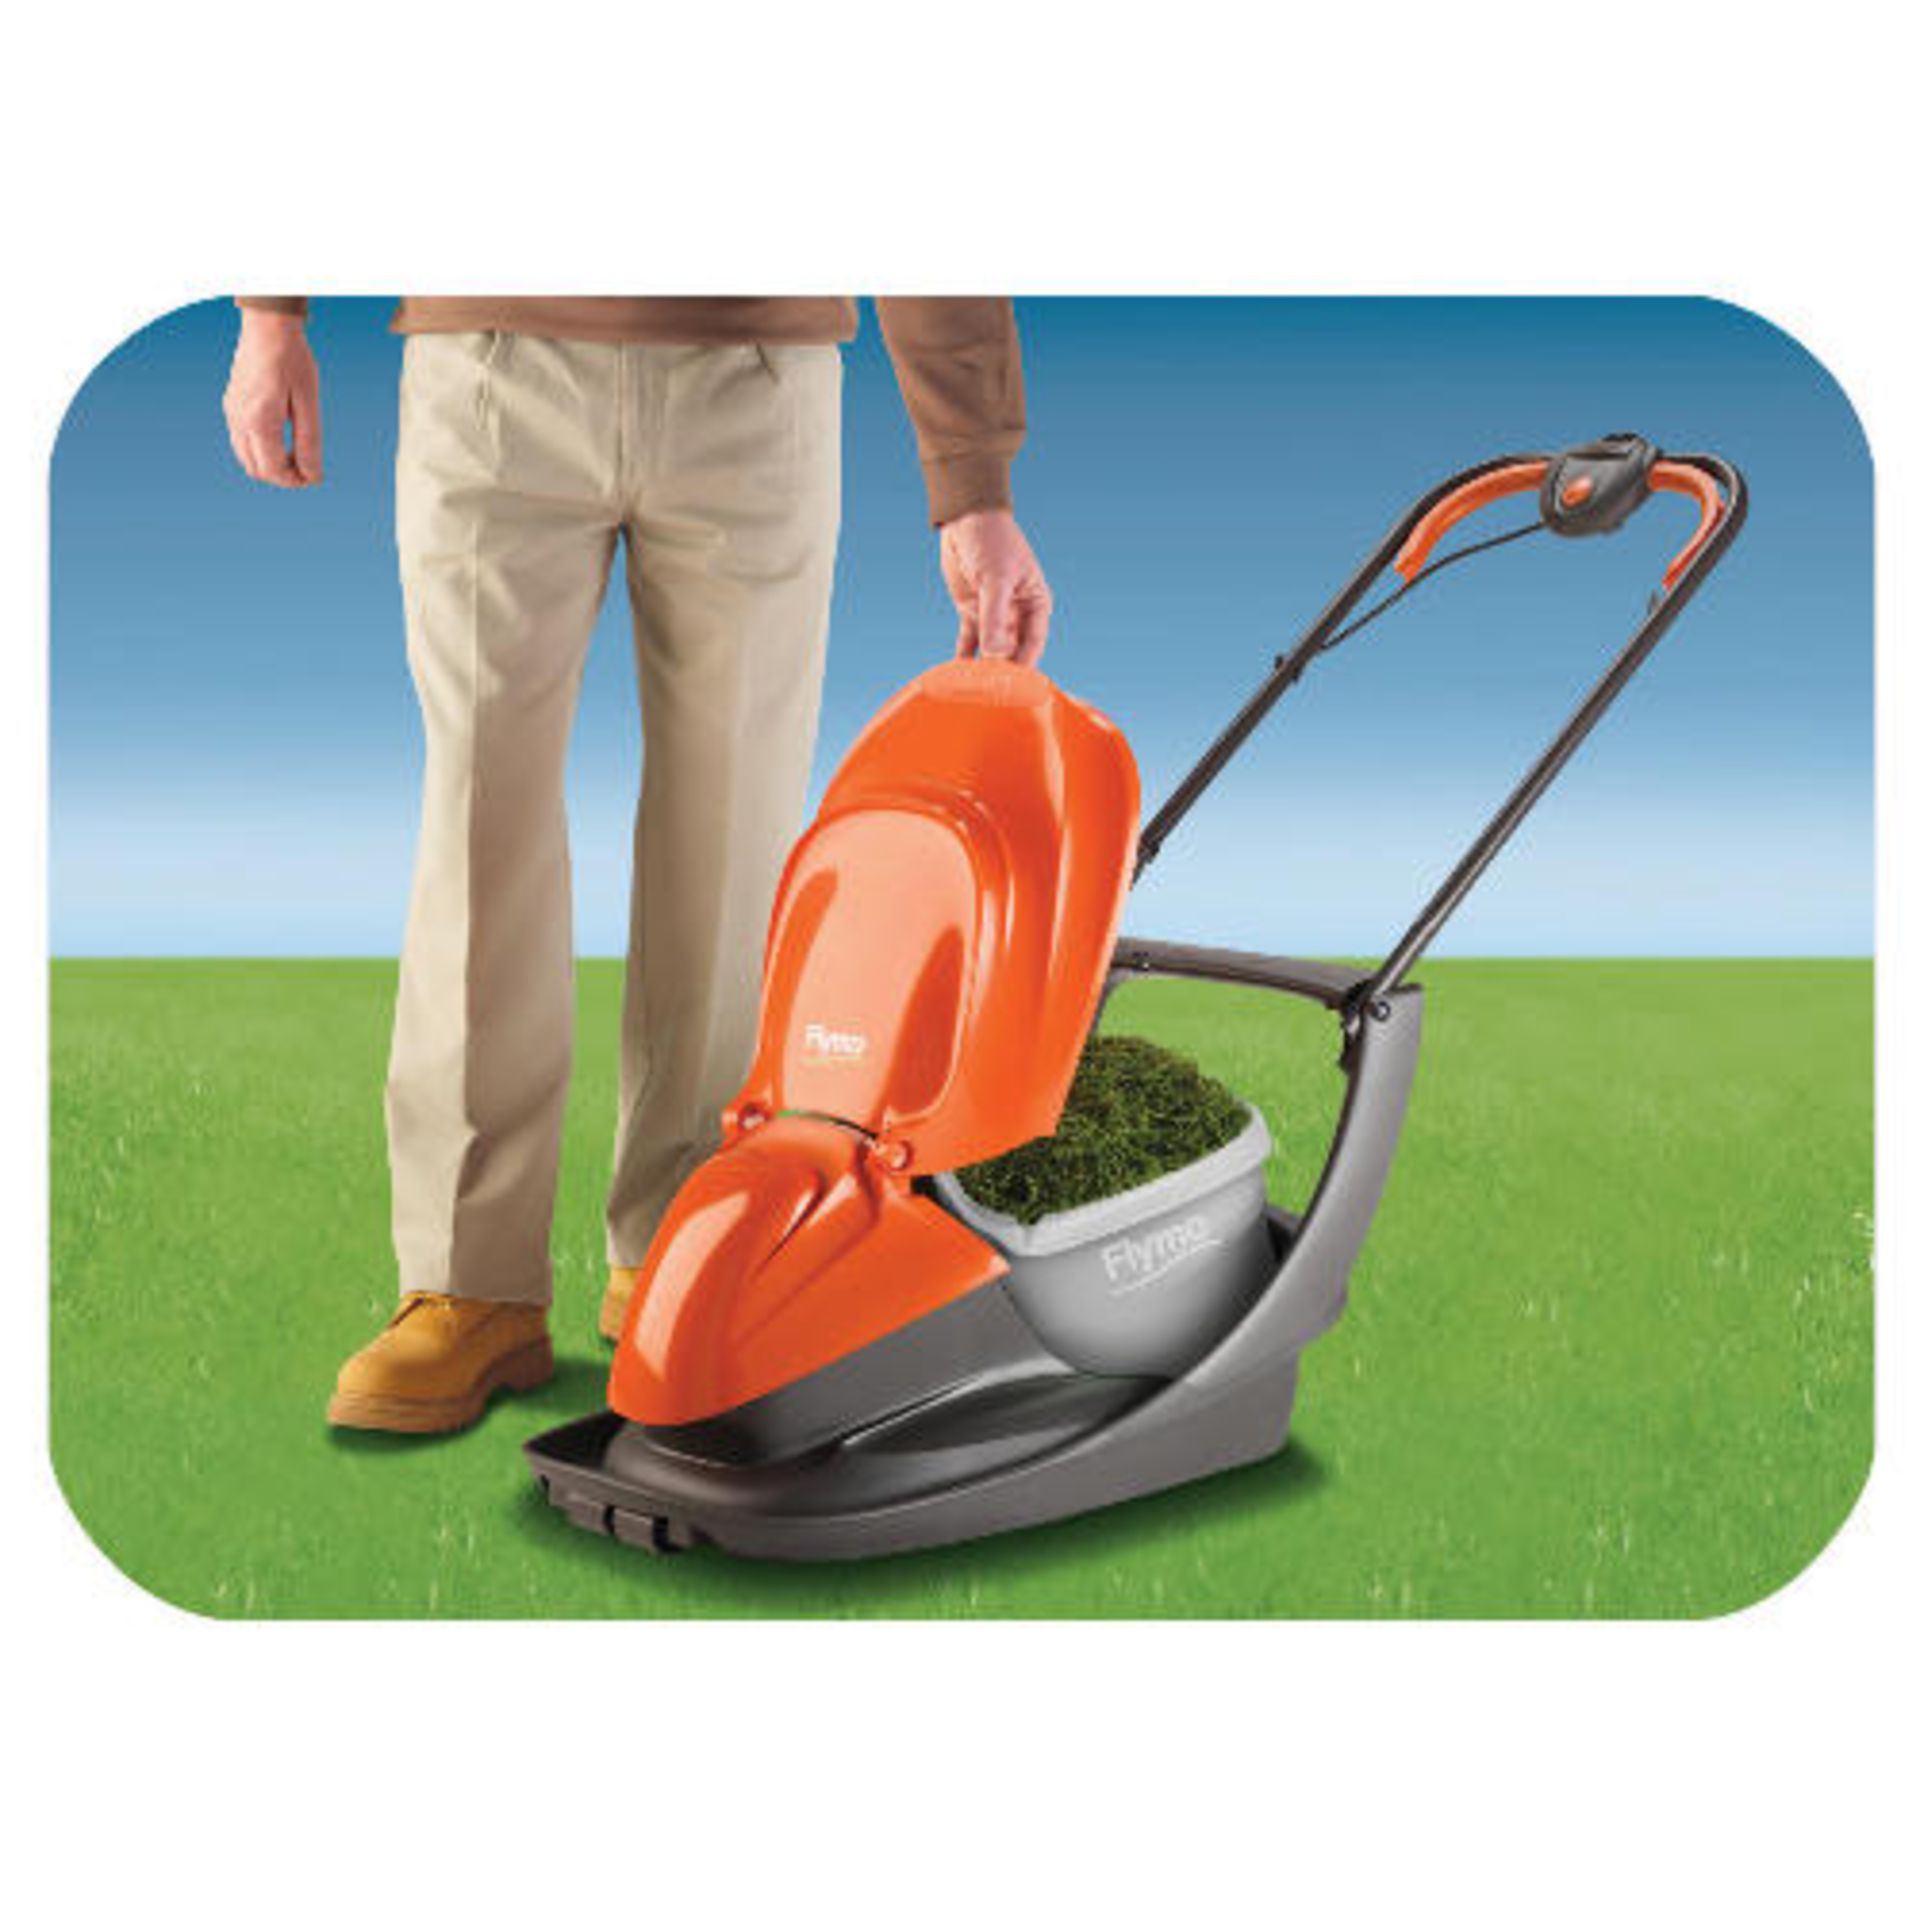 (P7) 2x Flymo EasiGlide 360V Electric Hover Collect Lawnmower RRP £120 Each. - Image 2 of 3